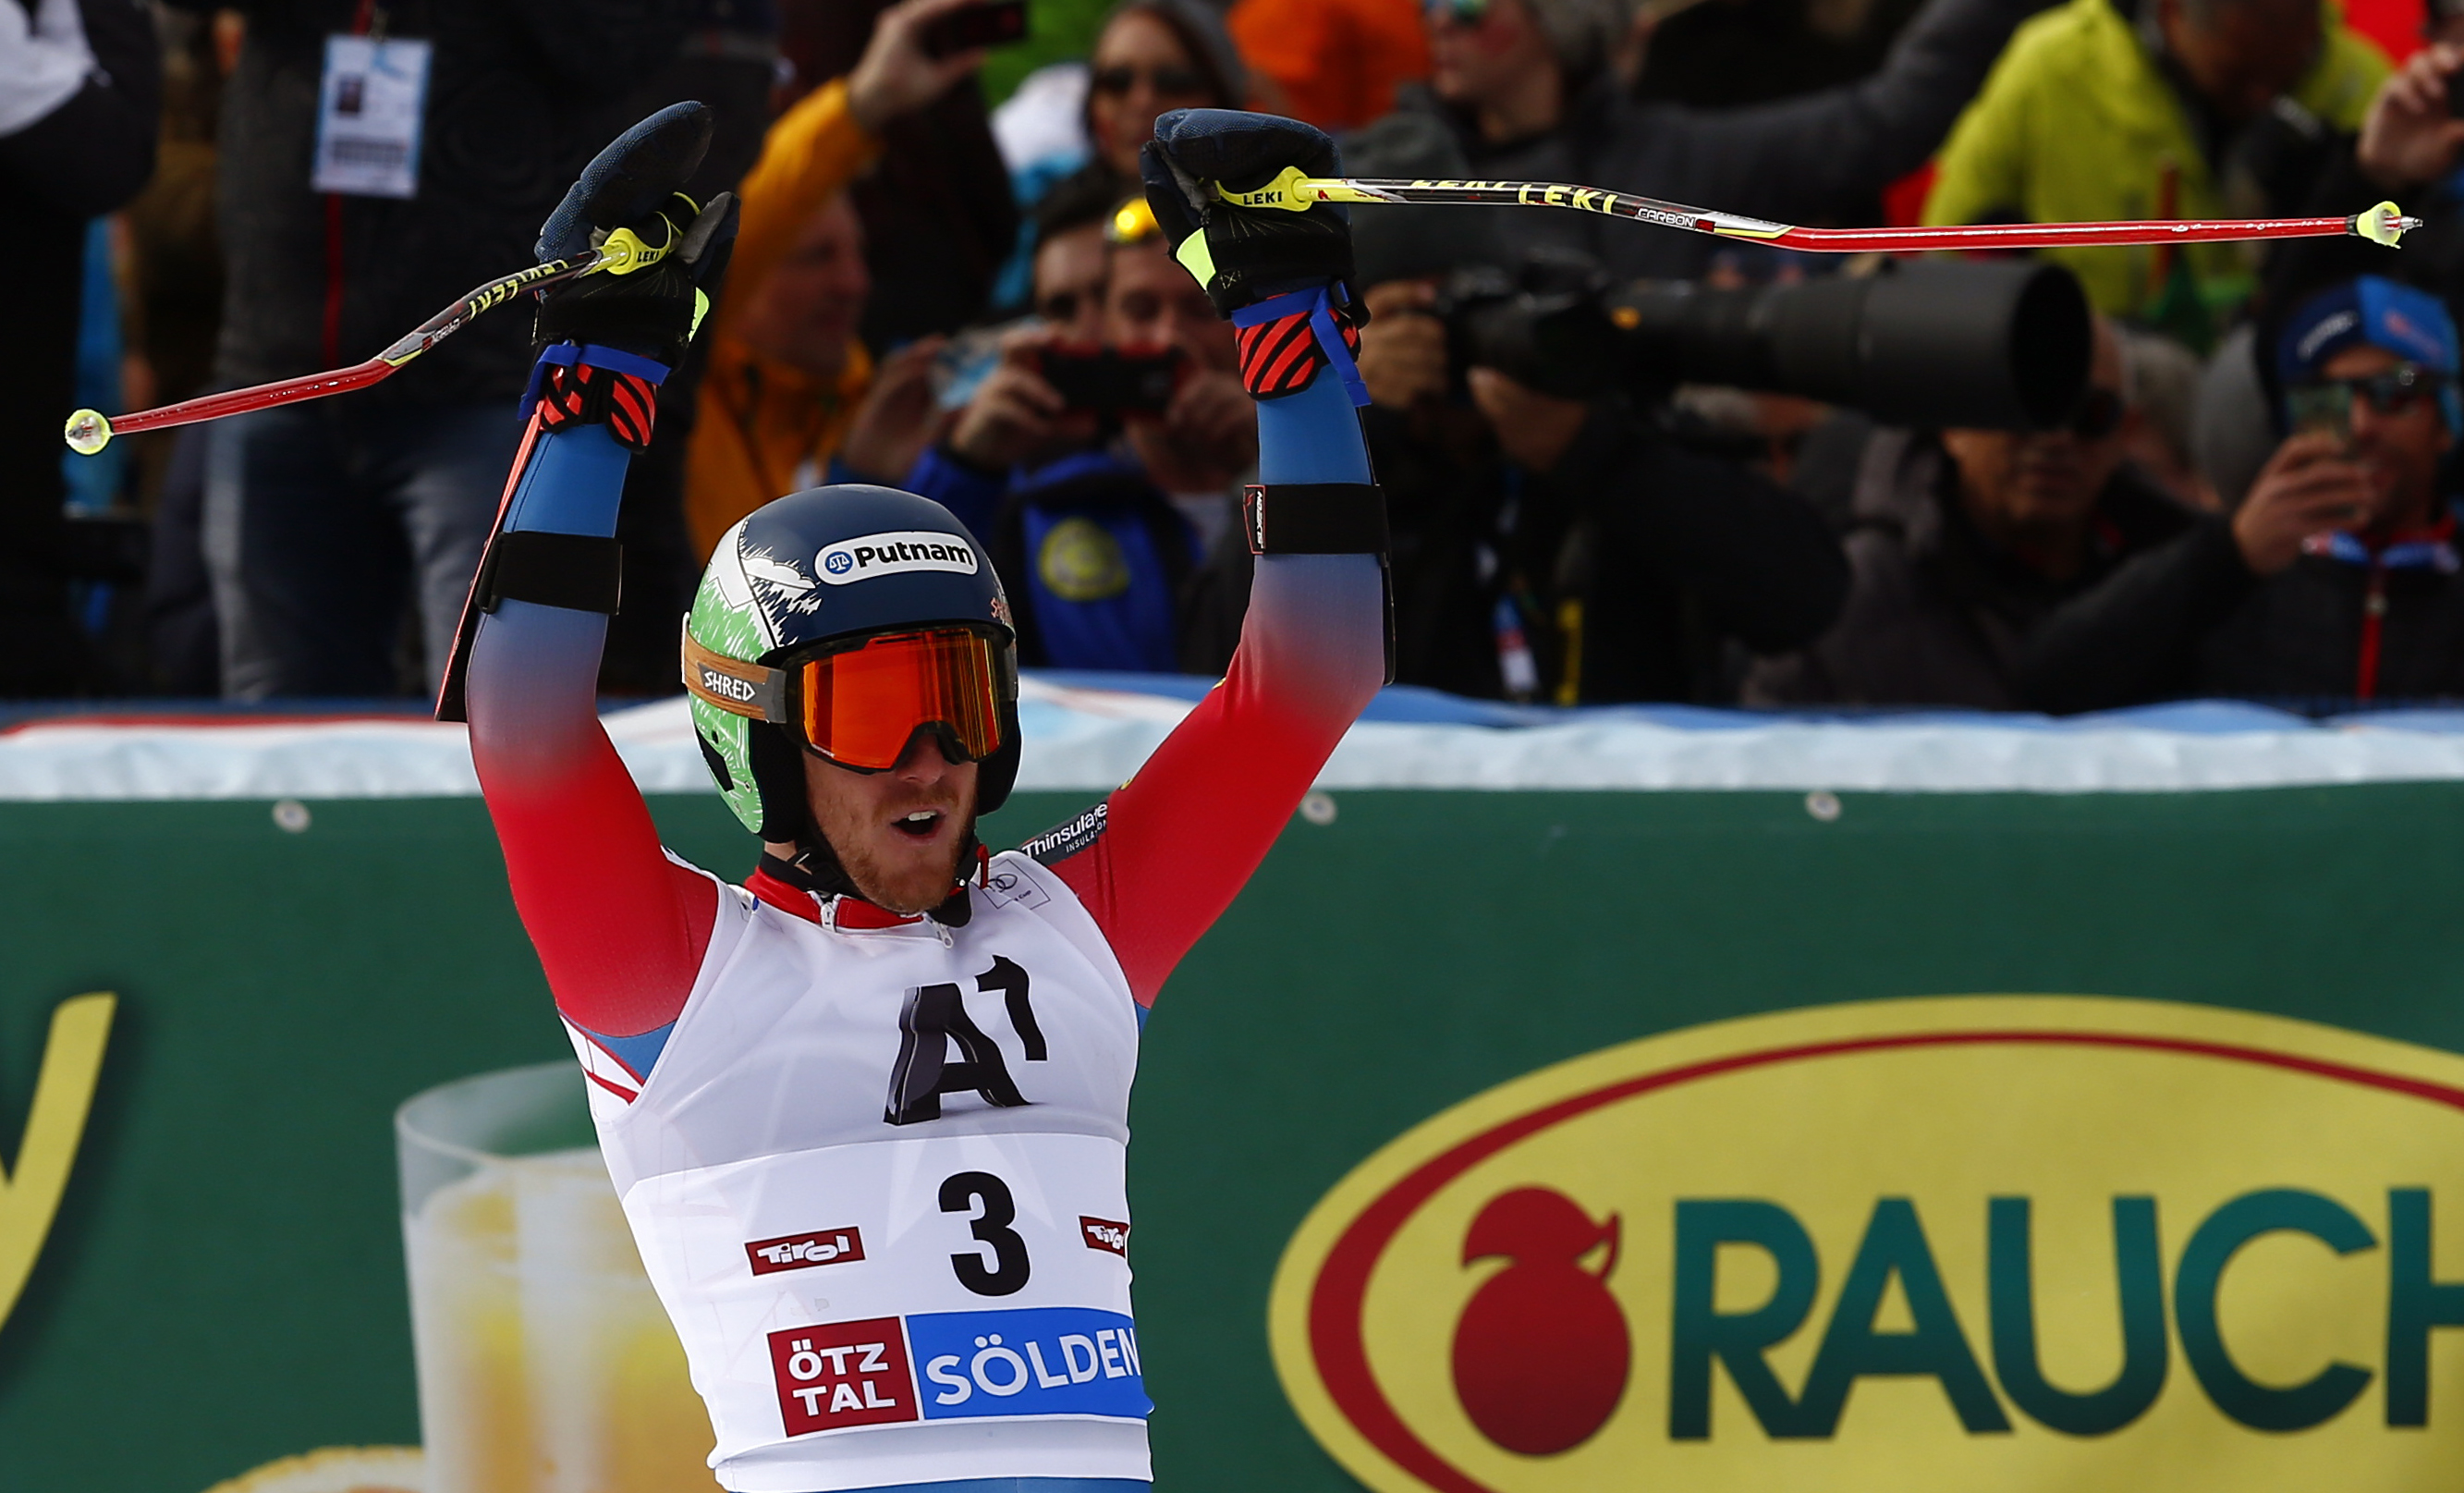 austria_alpine_skiing_world_cup025586296_r7784.jpg